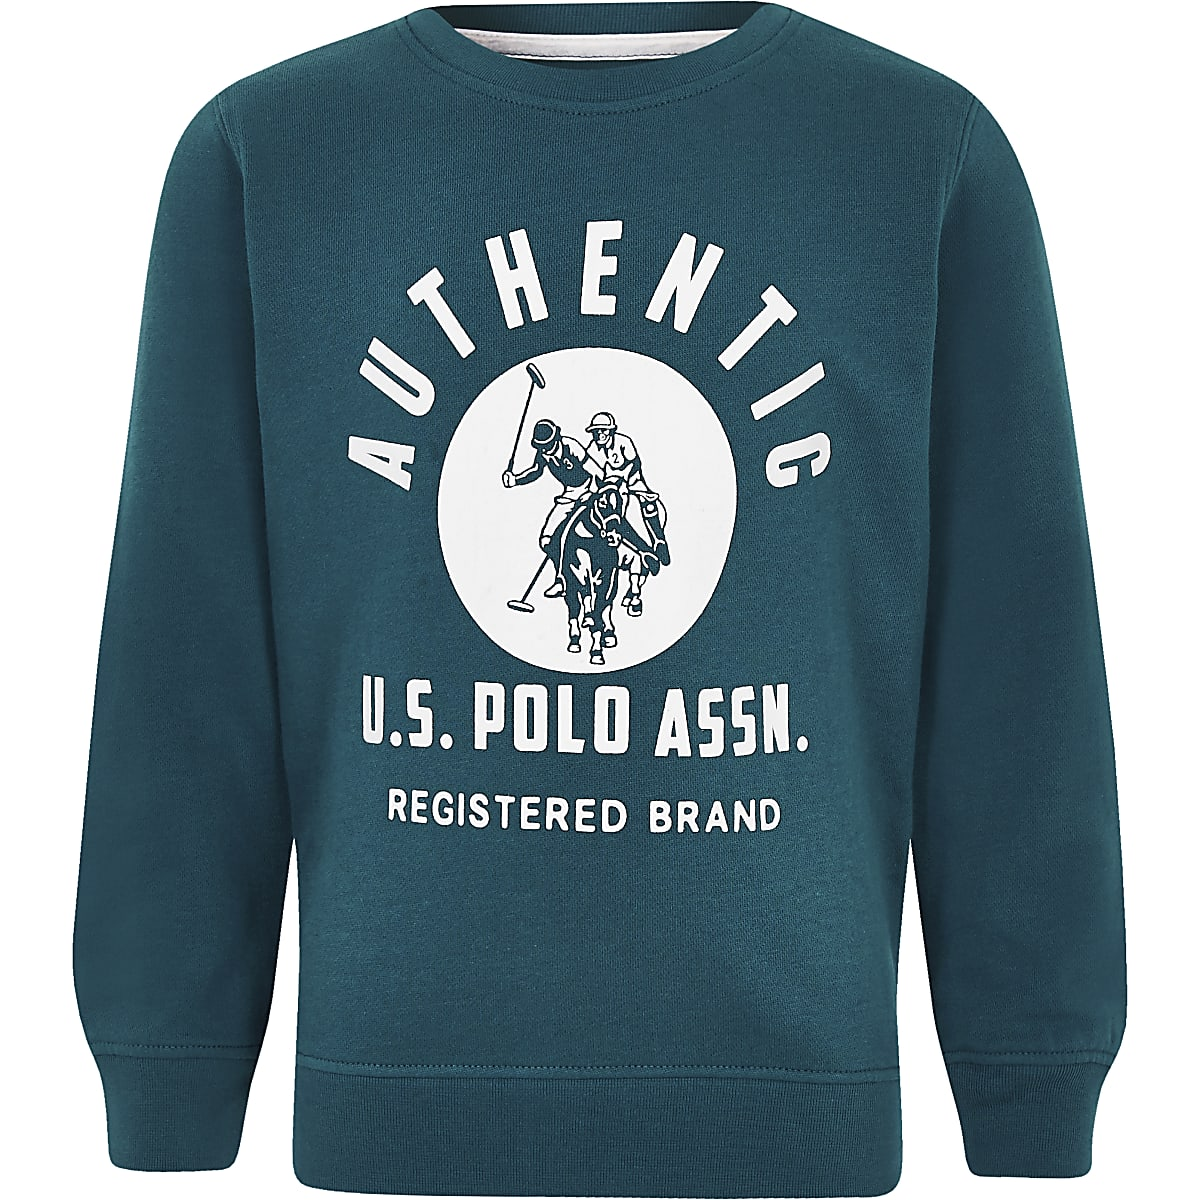 Boys blue U.S. Polo Assn. sweatshirt